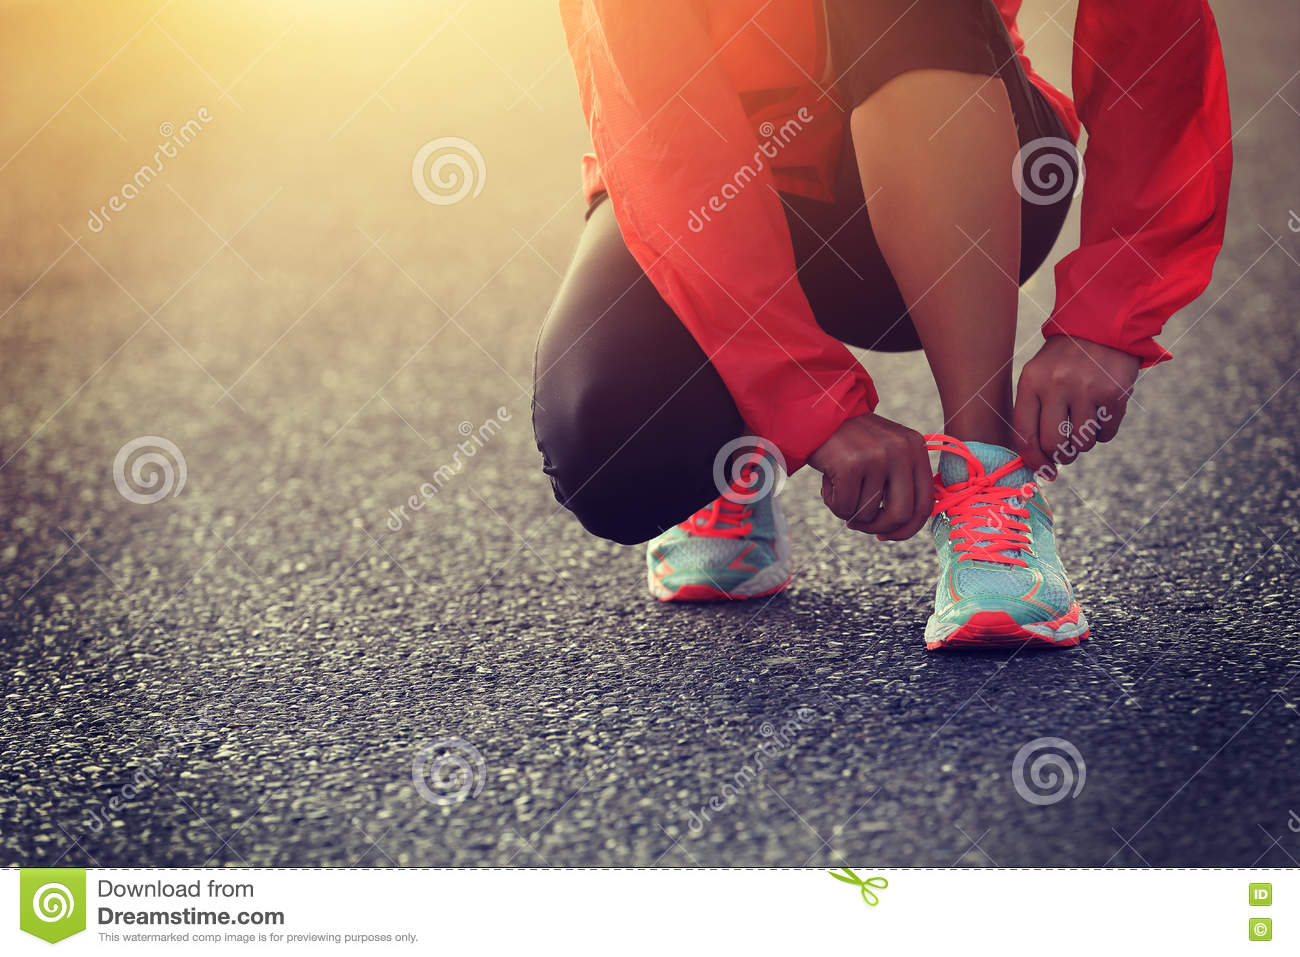 Runner tying shoelace on country road